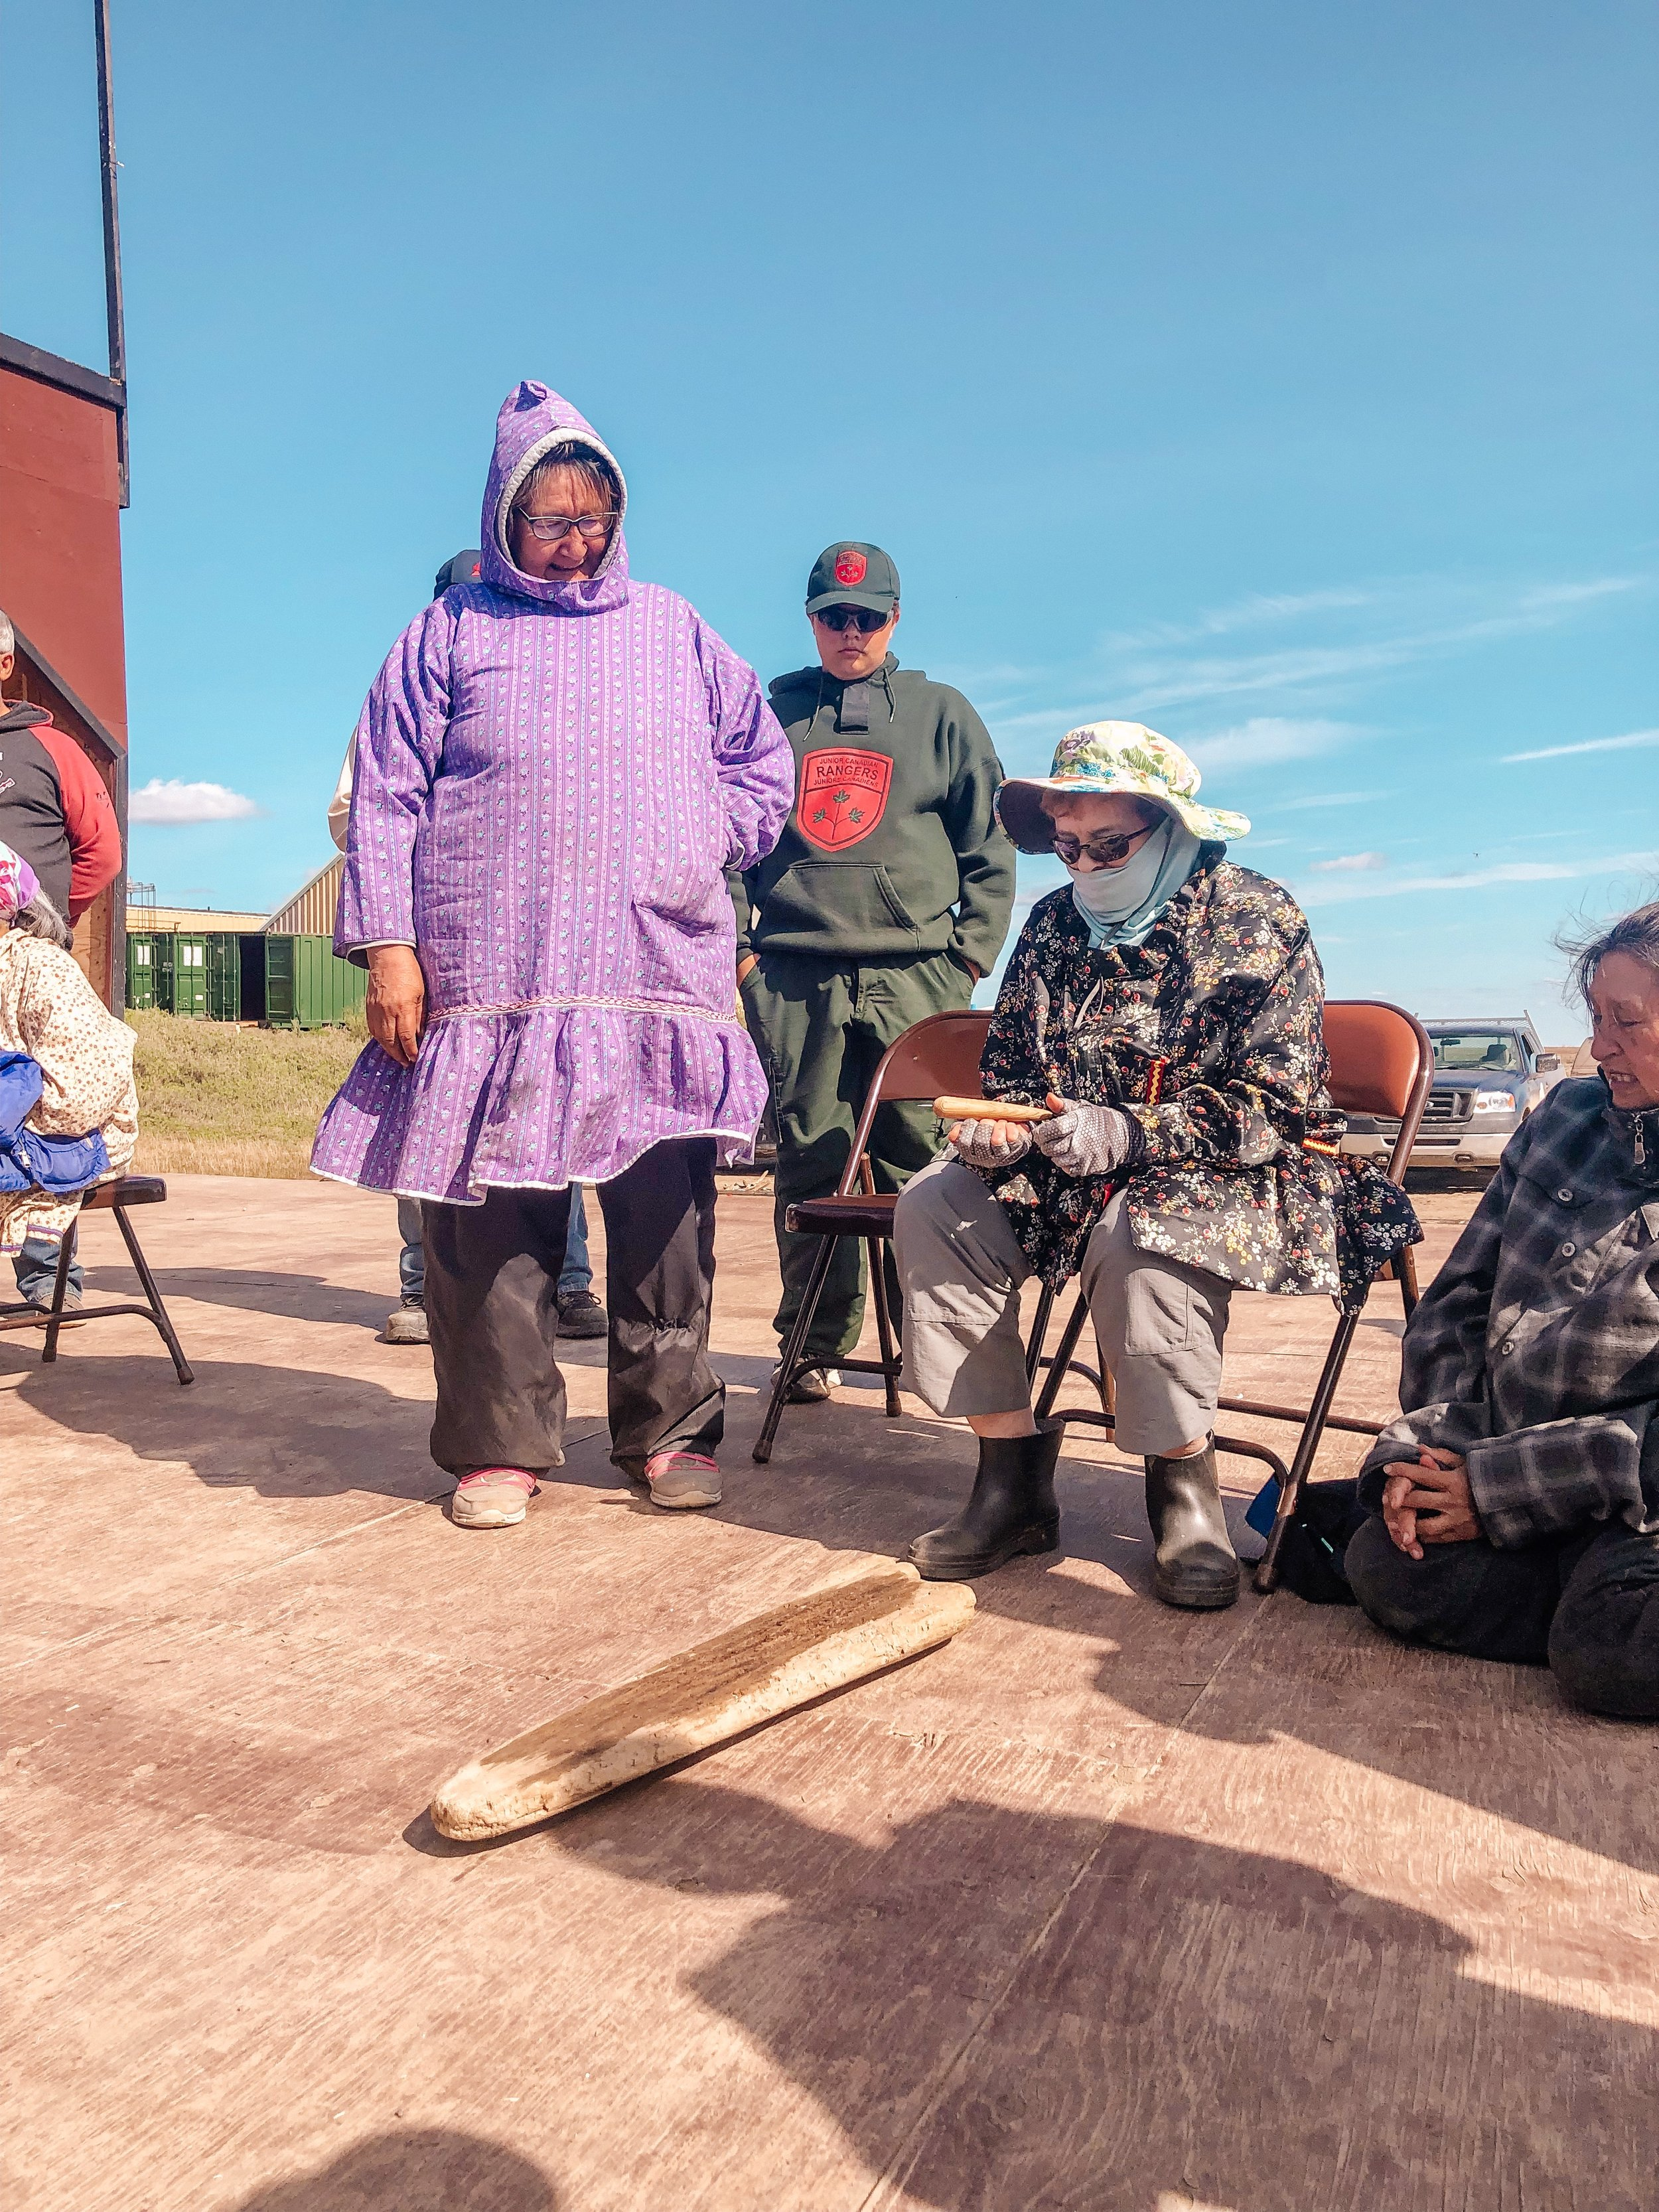 Traditional Inuit Games on National Indigenous Peoples Day in Tuktoyaktuk Northwest Territories Canada